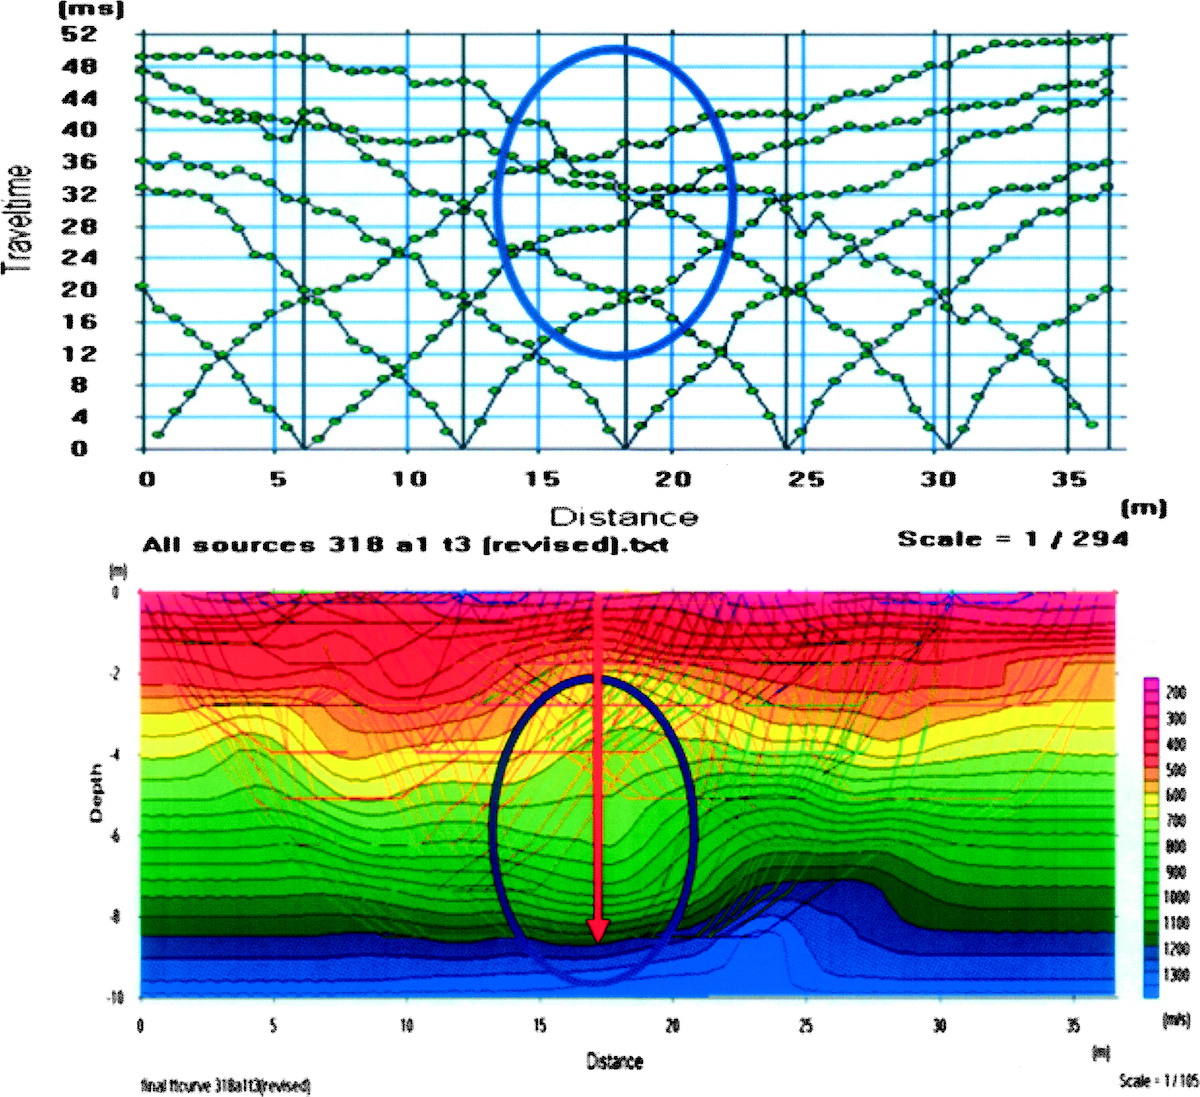 Seismic Refraction & Seismic Refraction Tomography: Advanced